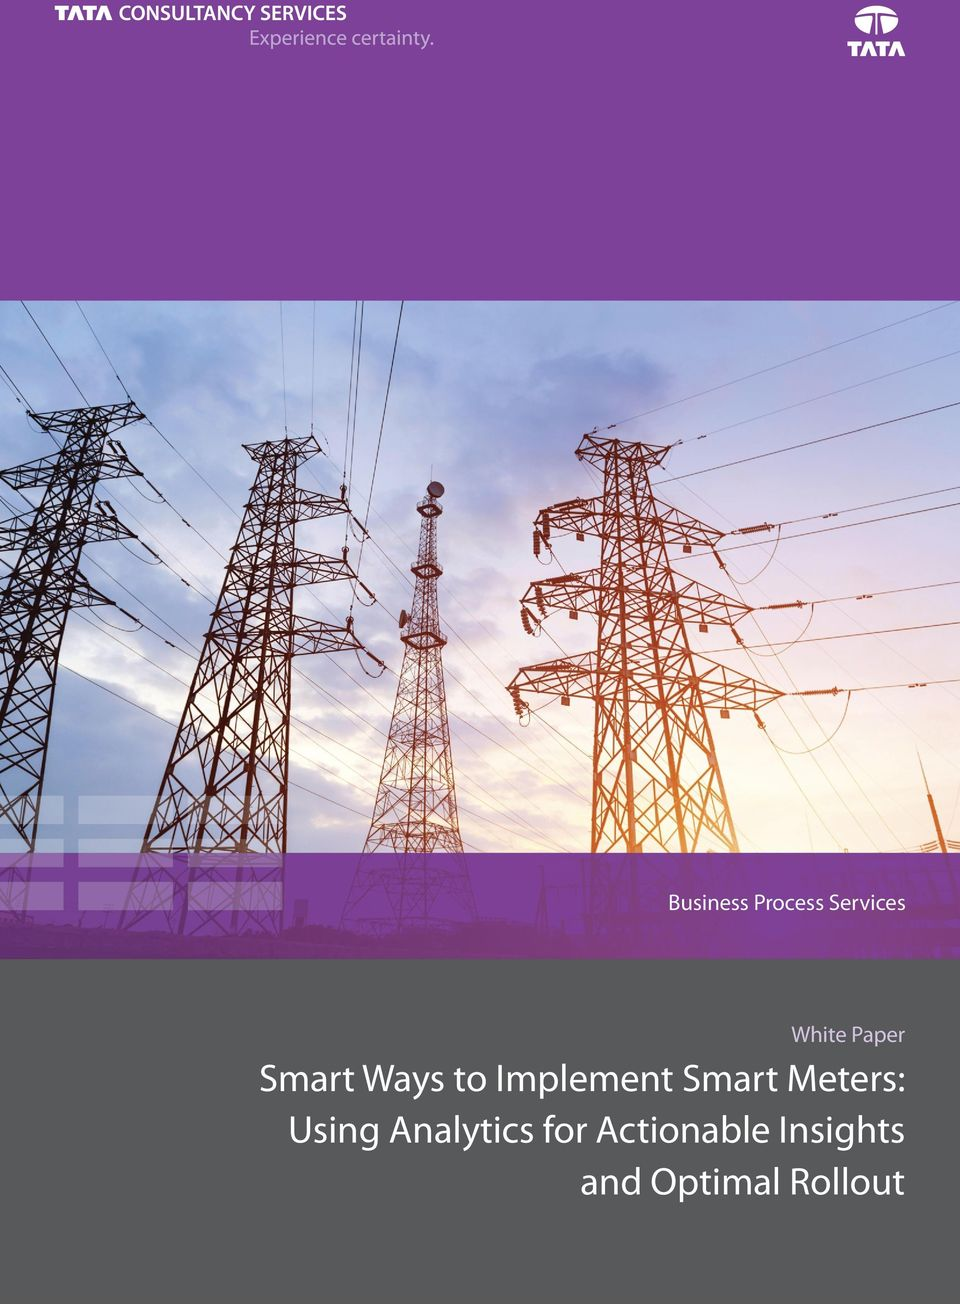 Smart Meters: Usig Aalytics for